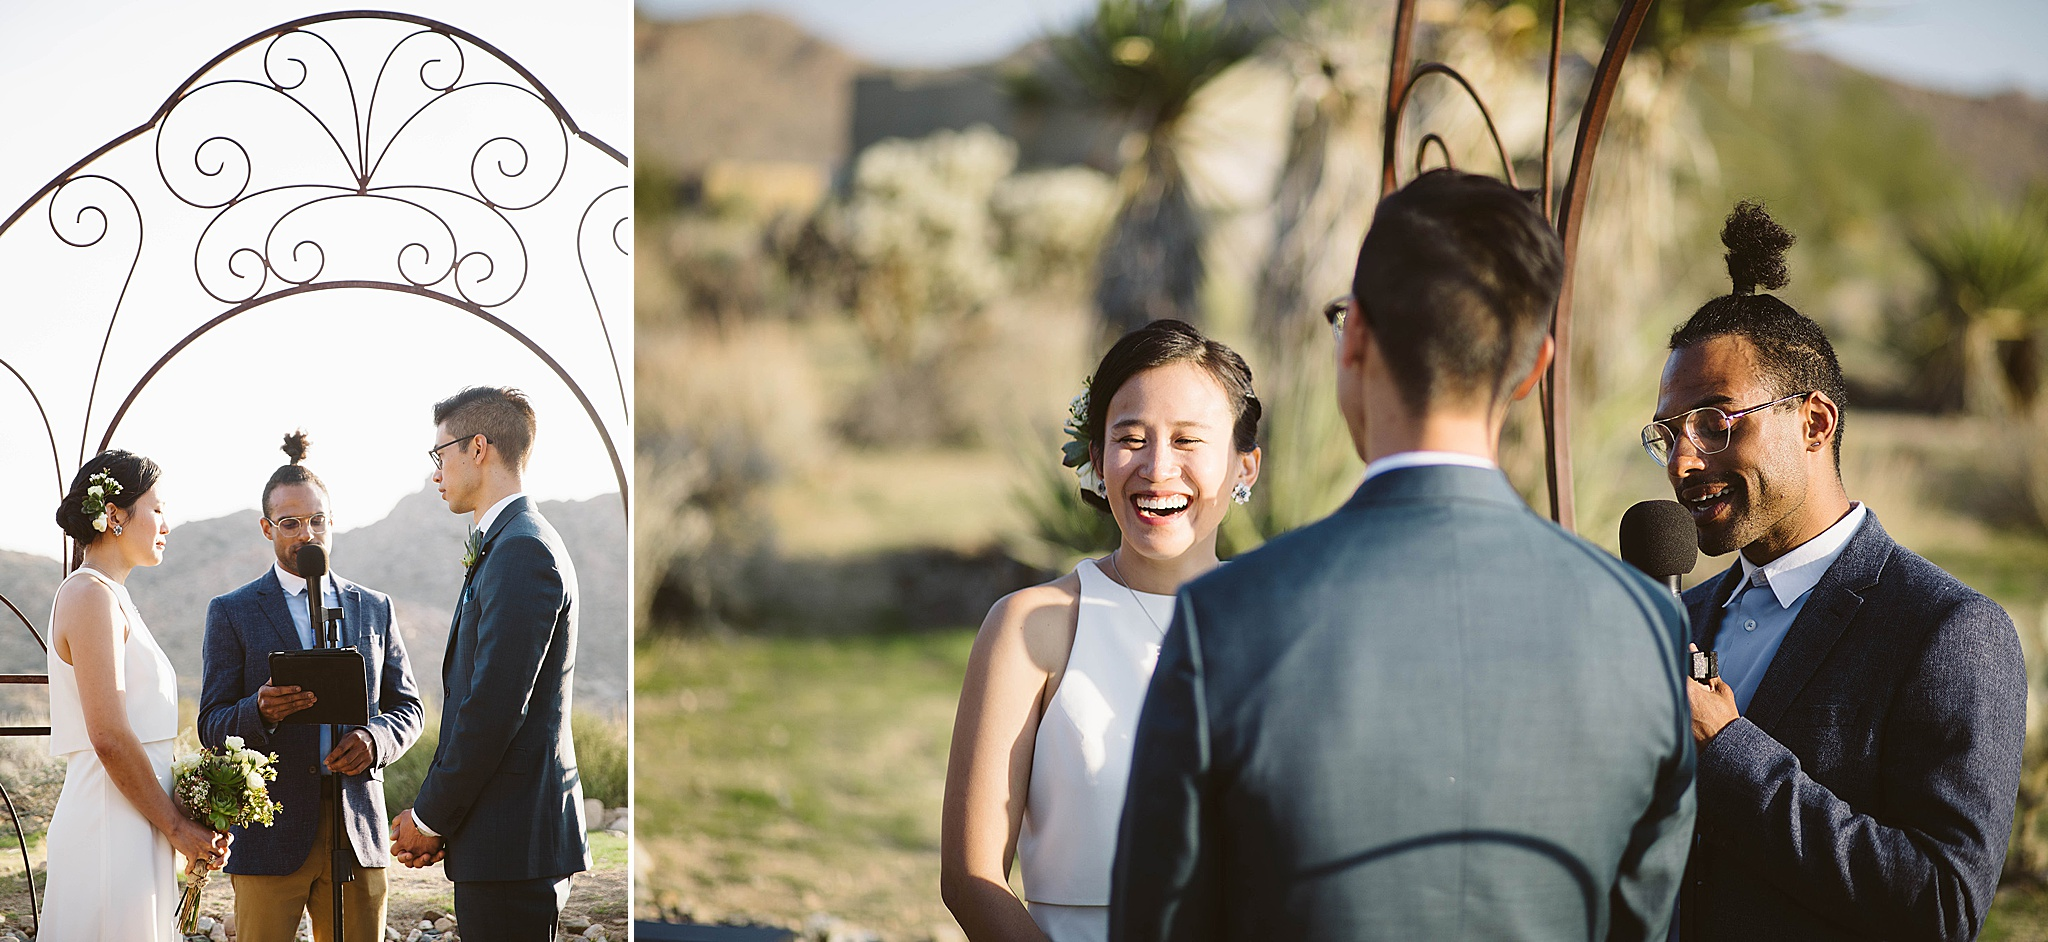 Naitonal Park Wedding ideas in Joshua Tree